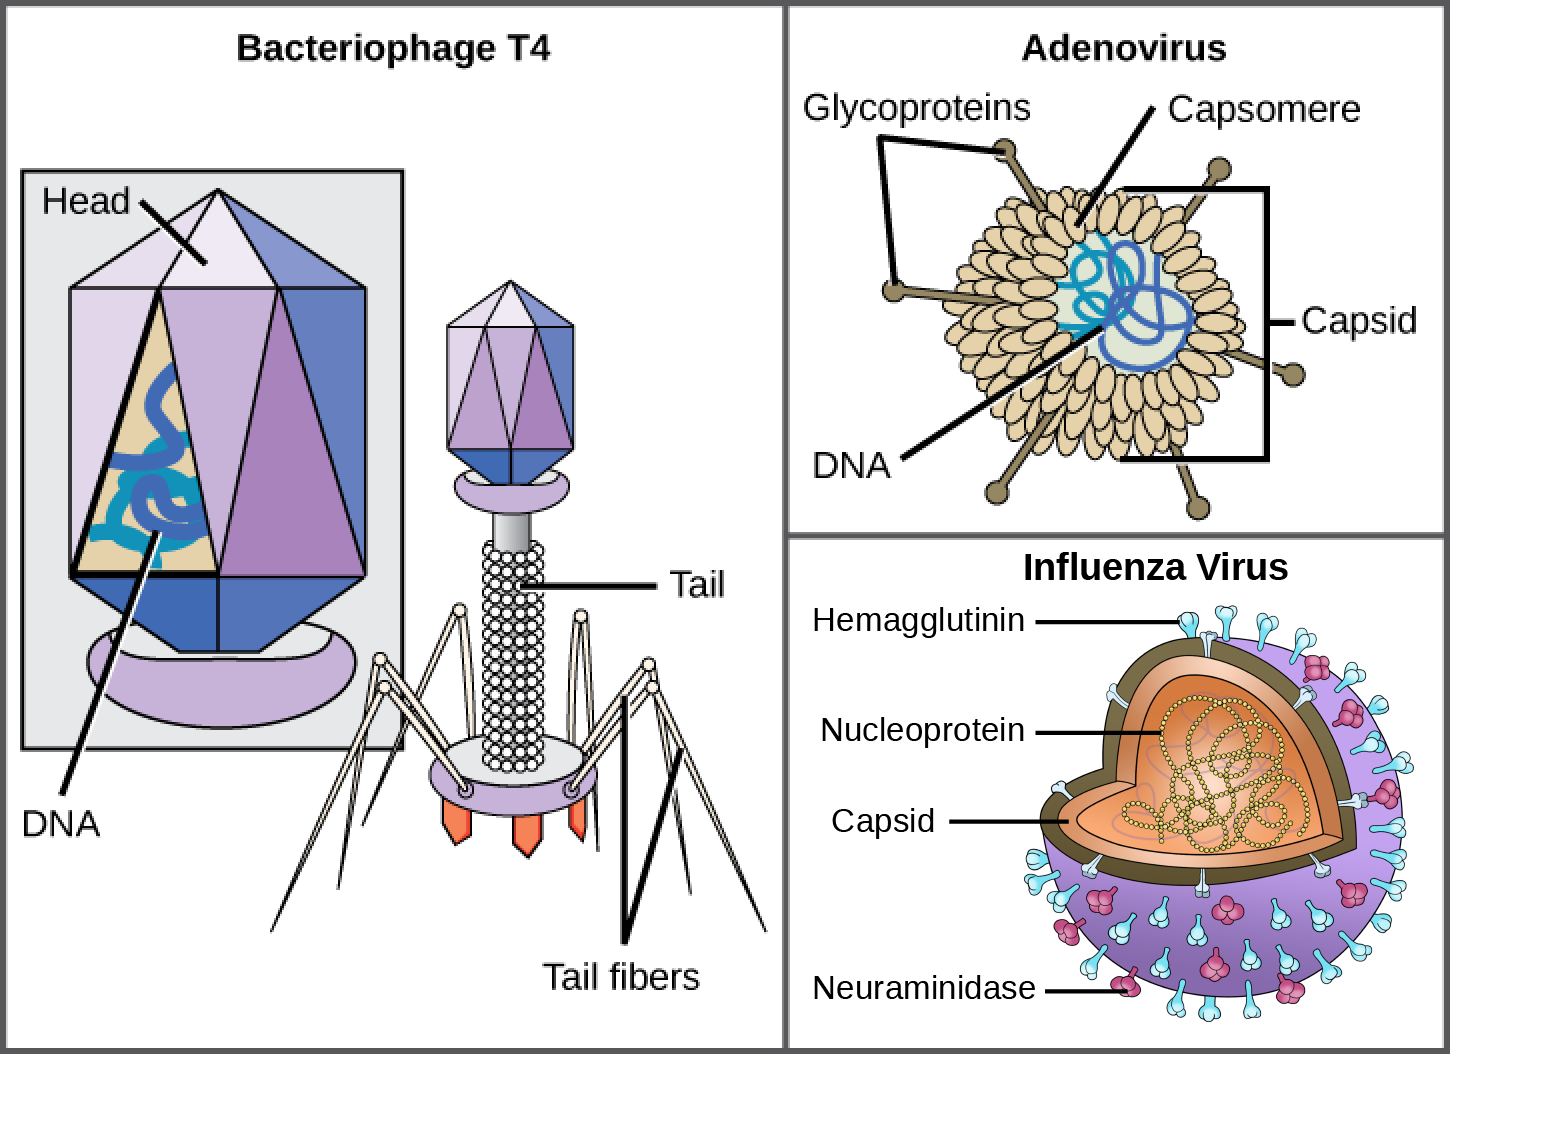 Illustration a shows bacteriophage T4, which houses its DNA genome in a hexagonal head. A long, straight tail extends from the bottom of the head. Tail fibers attached to the base of the tail are bent, like spider legs. In b, adenovirus houses its DNA genome in a round capsid made from many small capsomere subunits. Glycoproteins extend from the capsomere, like pins from a pincushion. In c, the HIV retrovirus houses its RNA genome and a bullet-shaped capsid. A spherical viral envelope, lined with matrix proteins, surrounds the capsid. Two different varieties of glycoprotein spike are embedded in the envelope. Approximately 80 percent of the spikes are hemagglutinin. The remaining 20 percent or so of the glycoprotein spikes consist of neuraminidase.